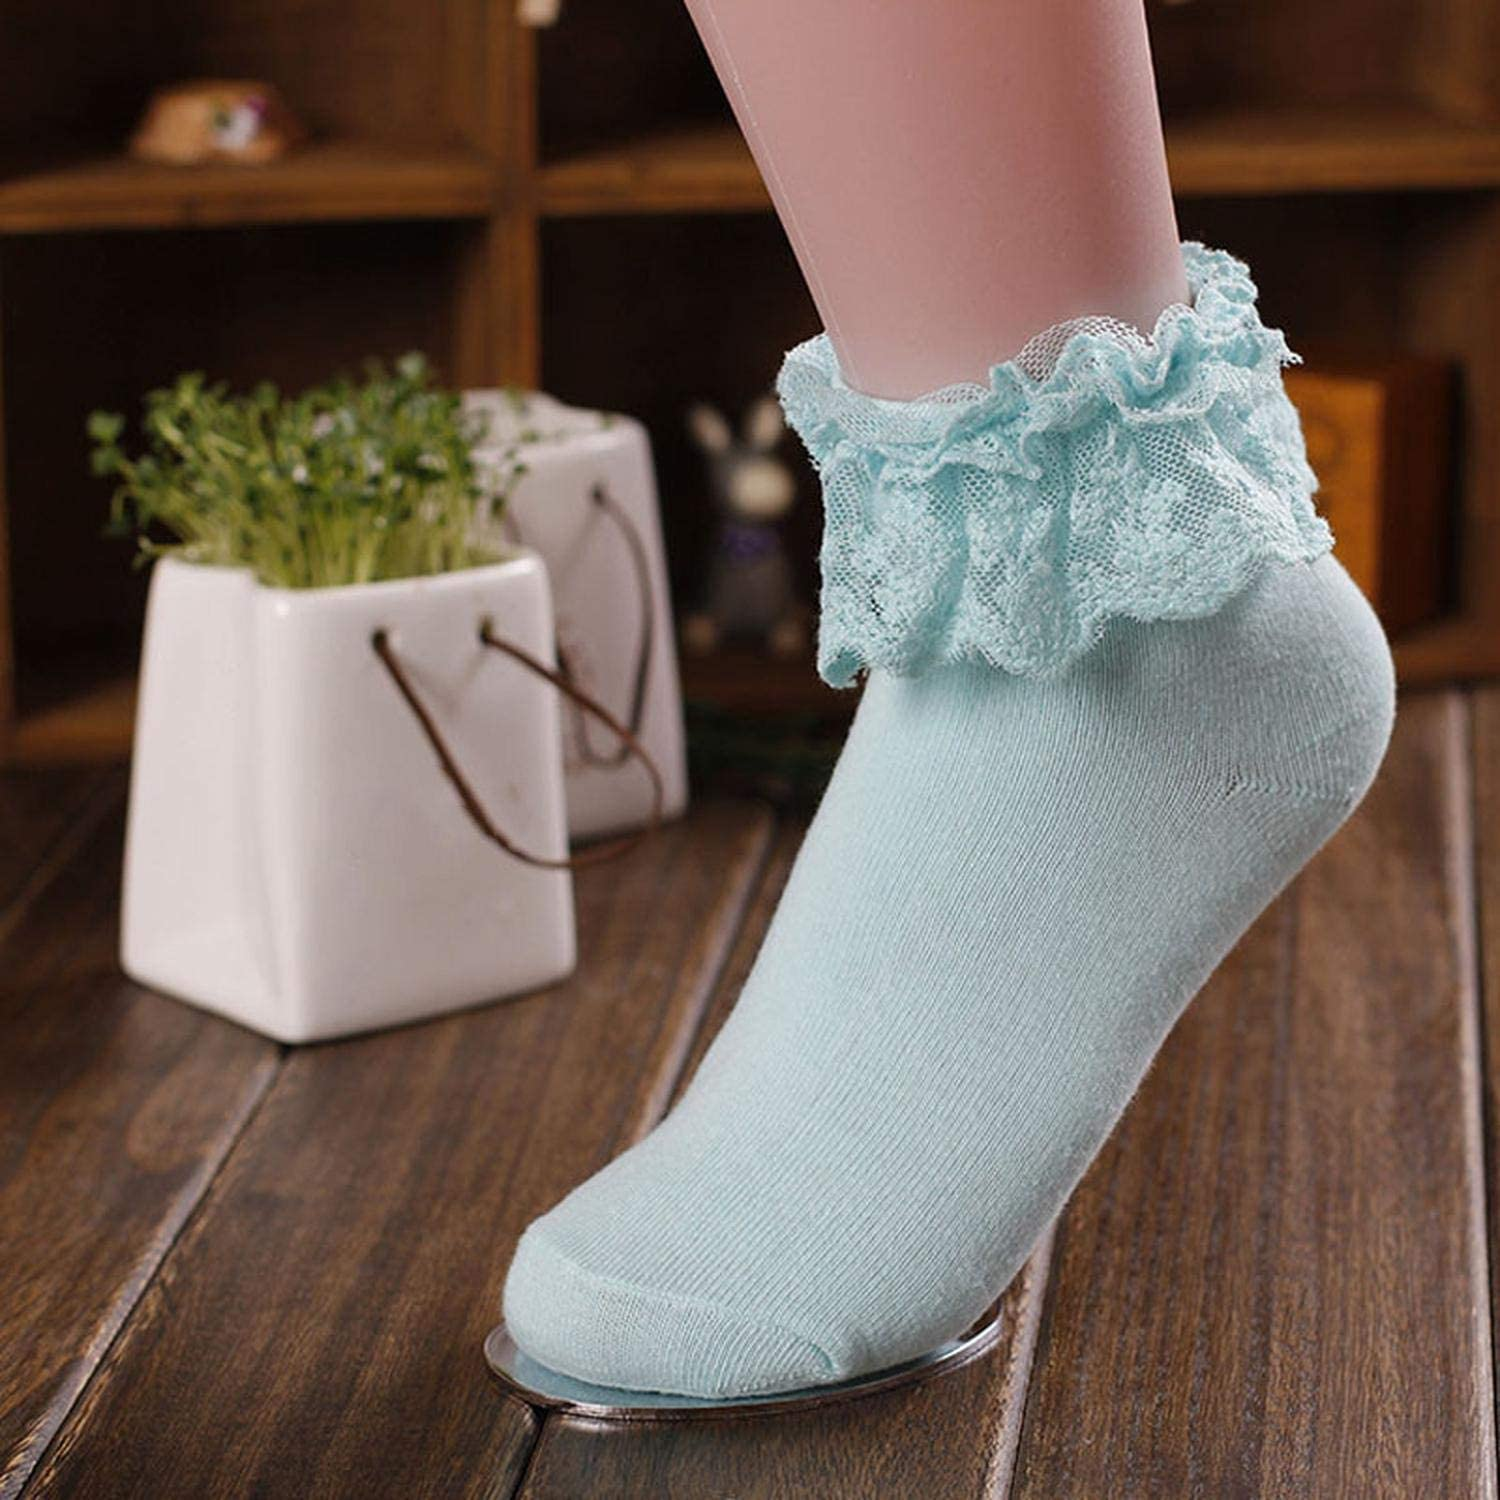 Women Vintage Lace Ruffle Frilly Ankle Socks Princess Girl Cotton Sock